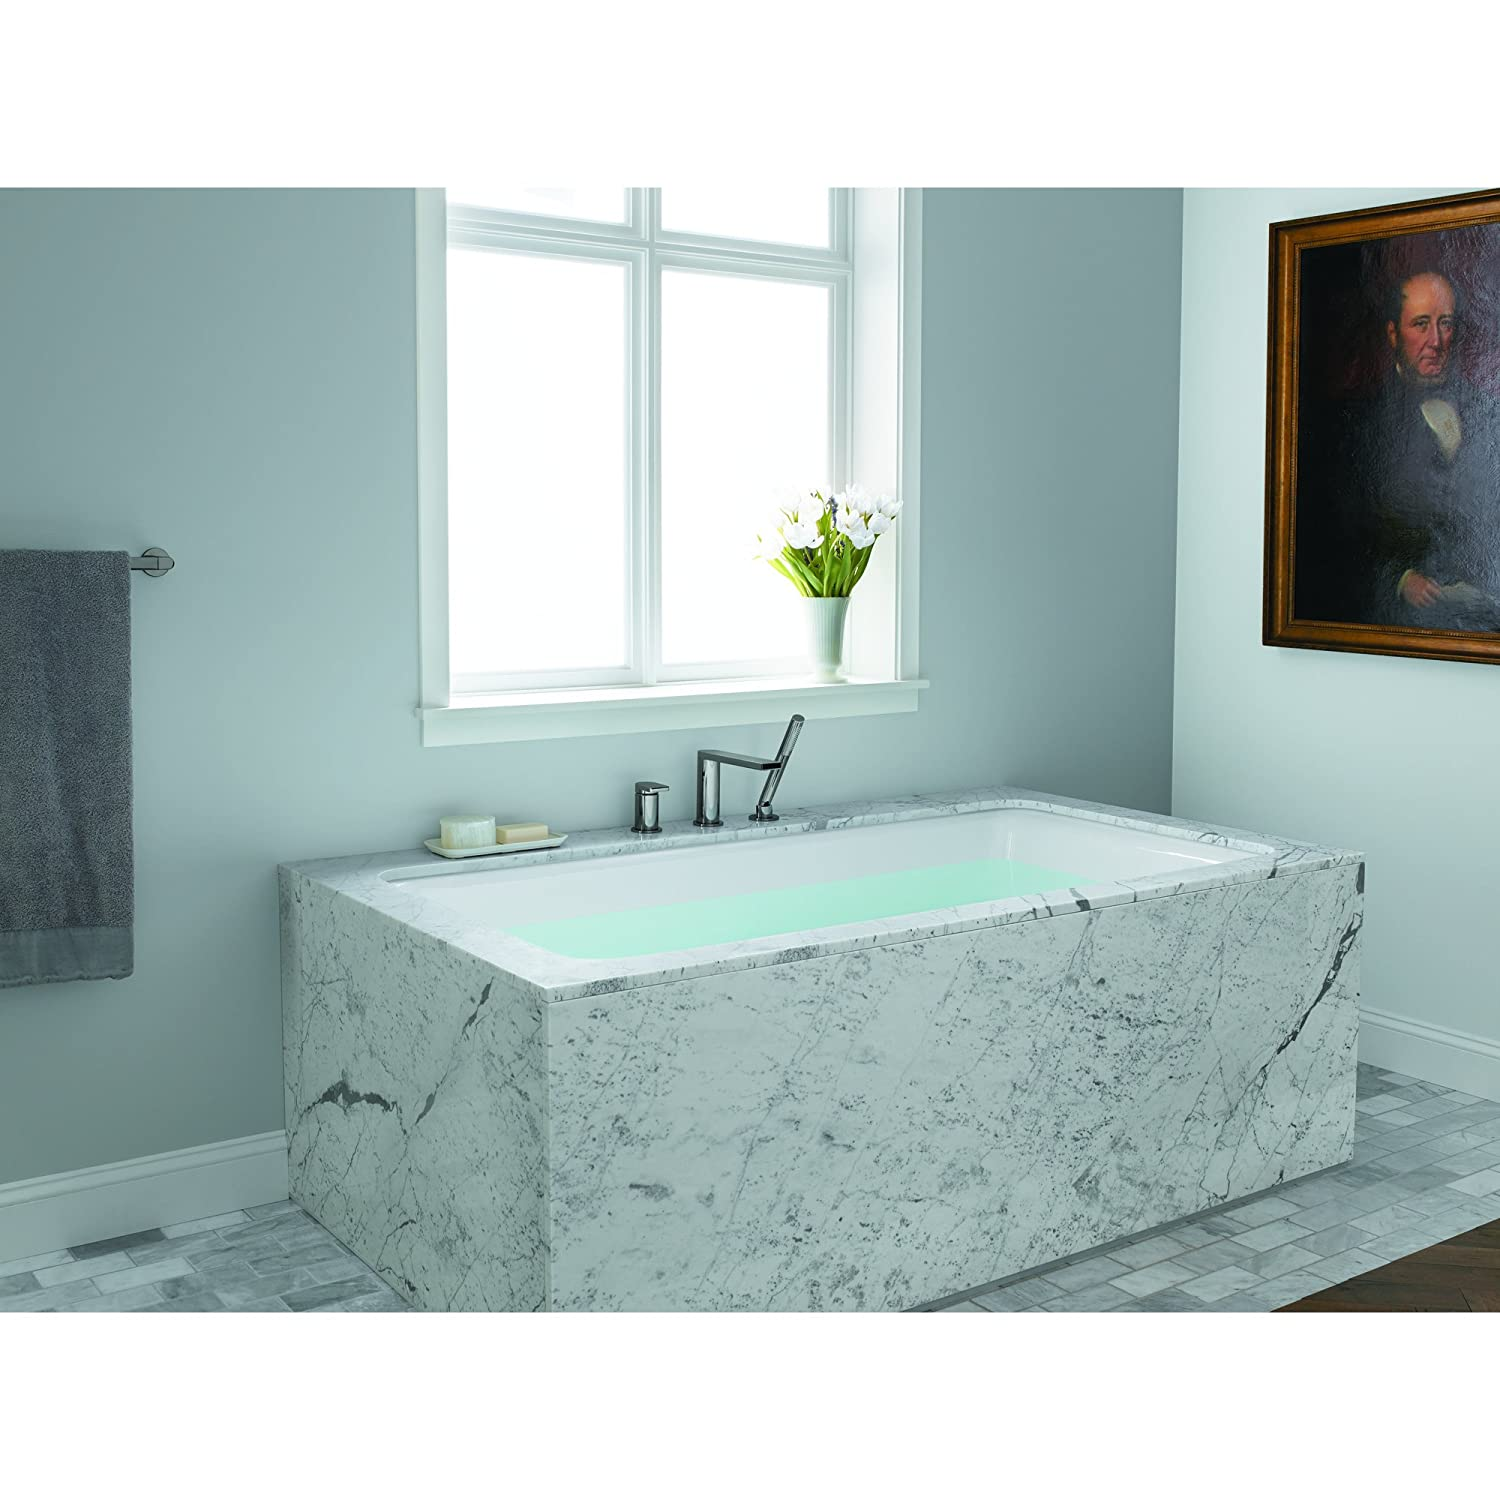 kohler alcove popular best what for great soaking design is styles of style tub appealing xf bellwether a picture and home bathroom